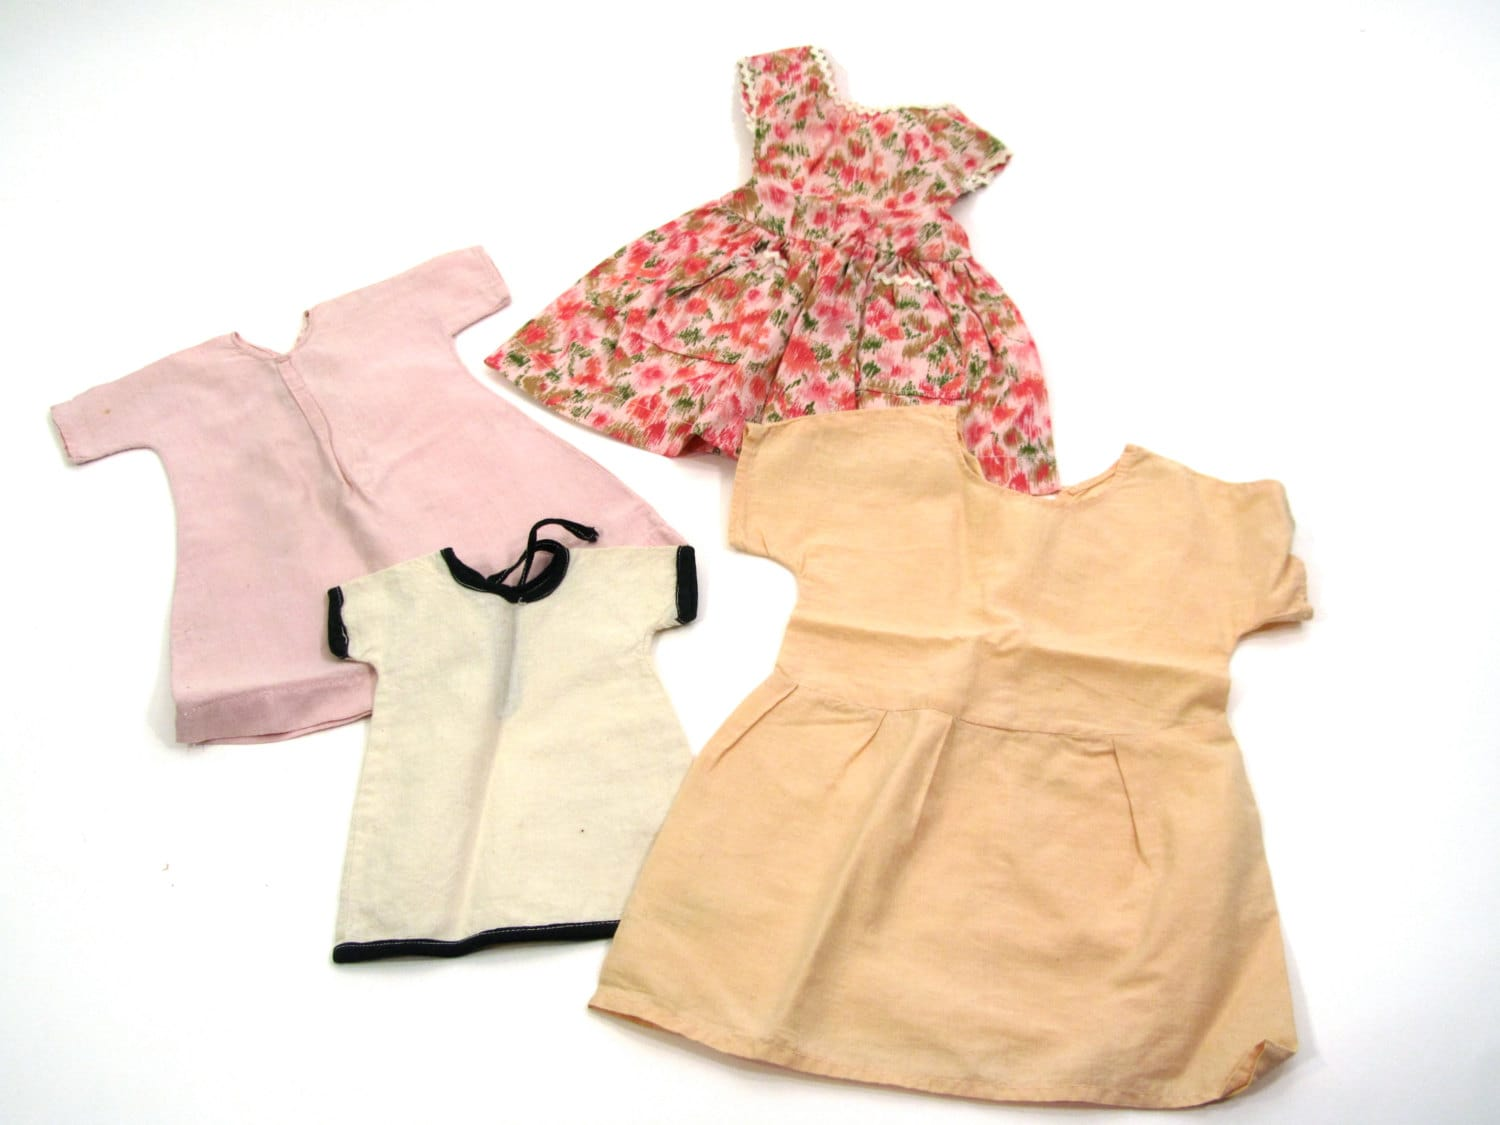 vintage 1950s baby doll clothes 4 dresses